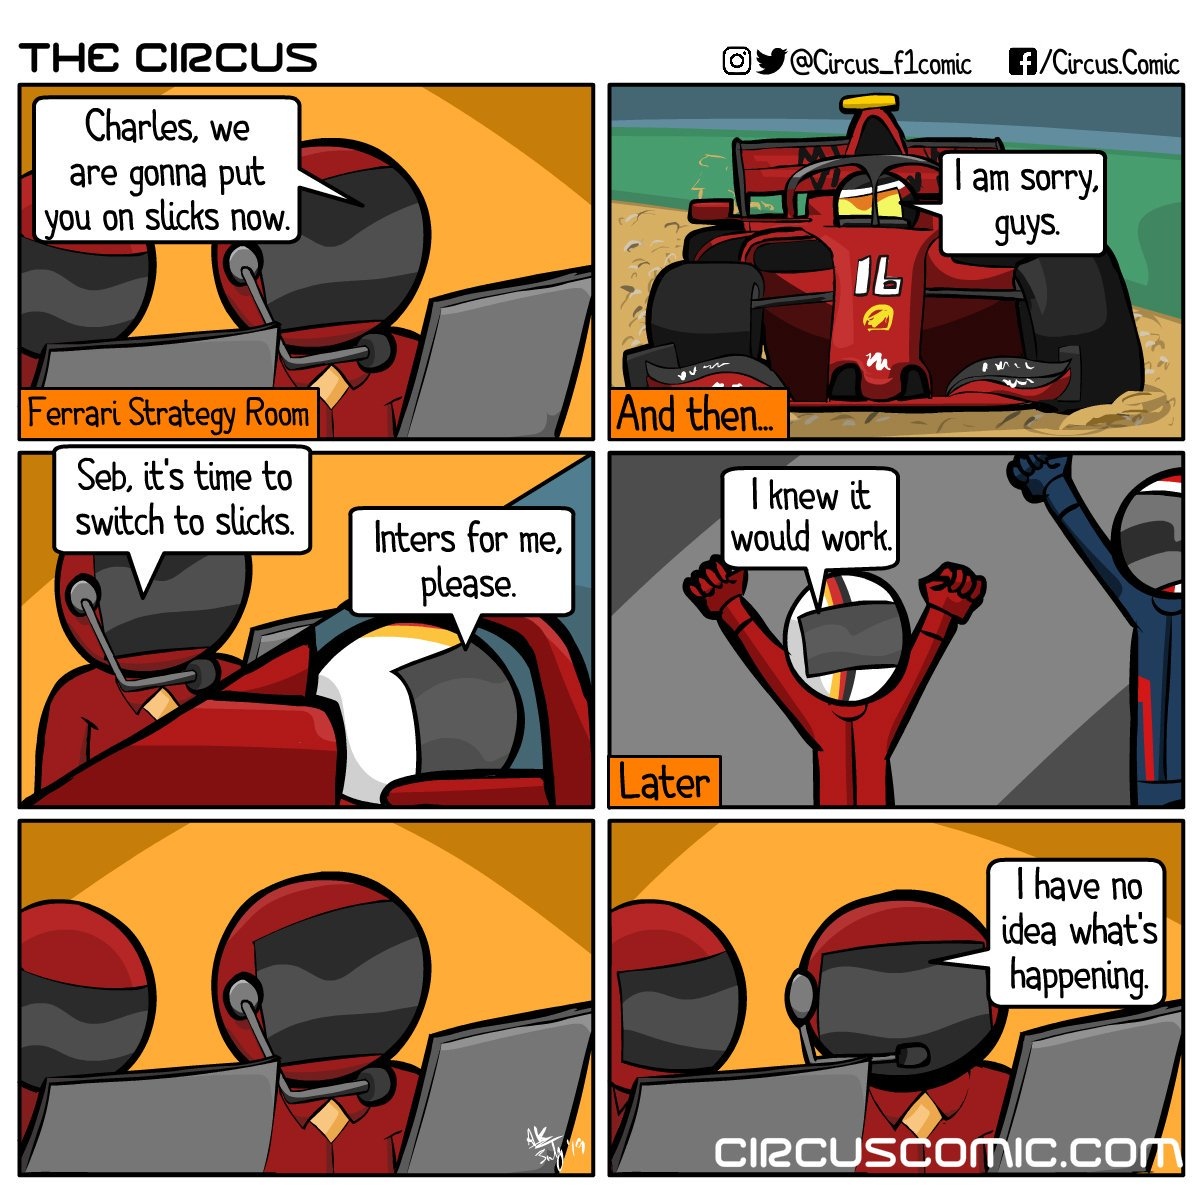 Same. (One last comic from the #GermanGP)  #StrategyGuyReturnsToStrikeAgain #Vettel #GermanGP #HungarianGP #F1 #formula1